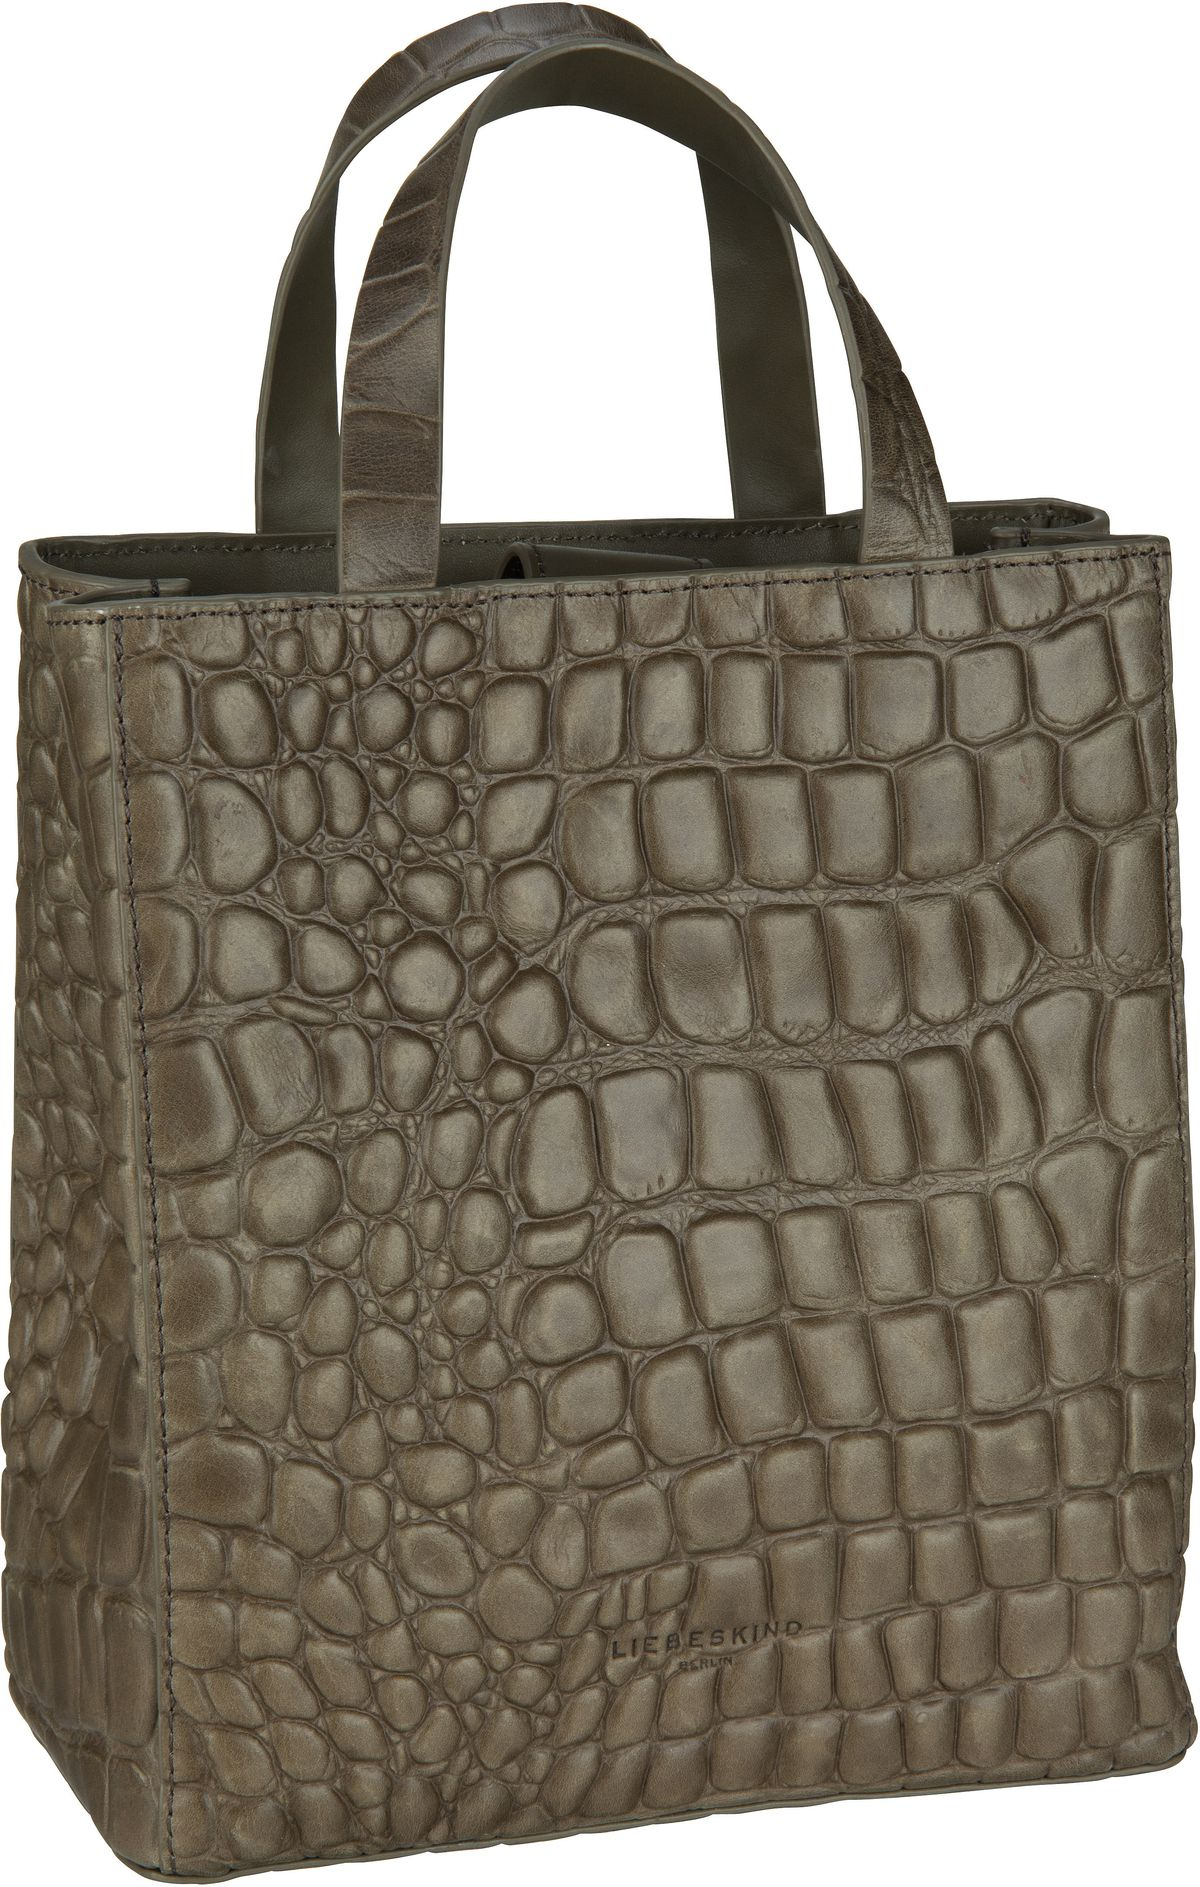 Berlin Handtasche Paper Bag Croco Tote S Dark Olive Green